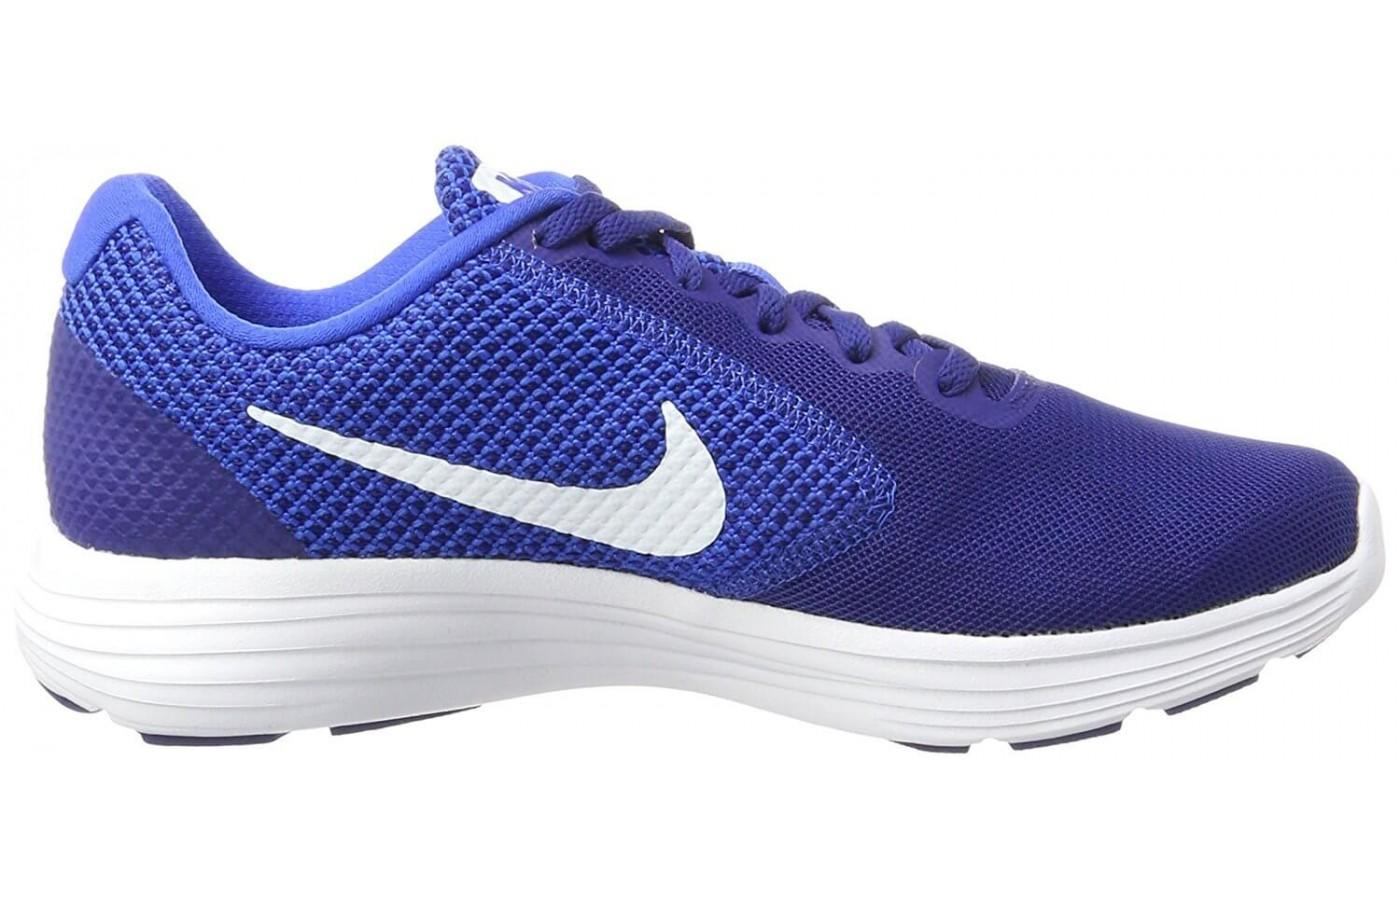 The Nike Revolution 3 in men's cobalt blue version